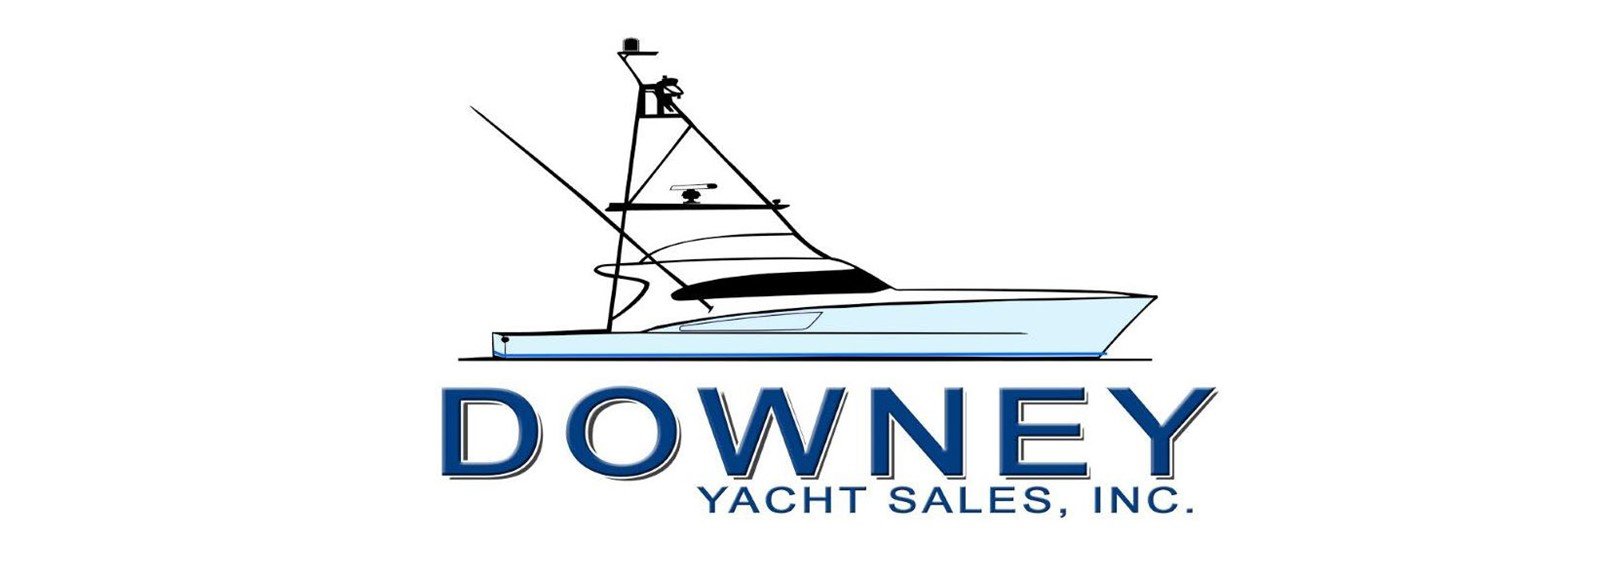 Downey Yacht Sales, Inc.